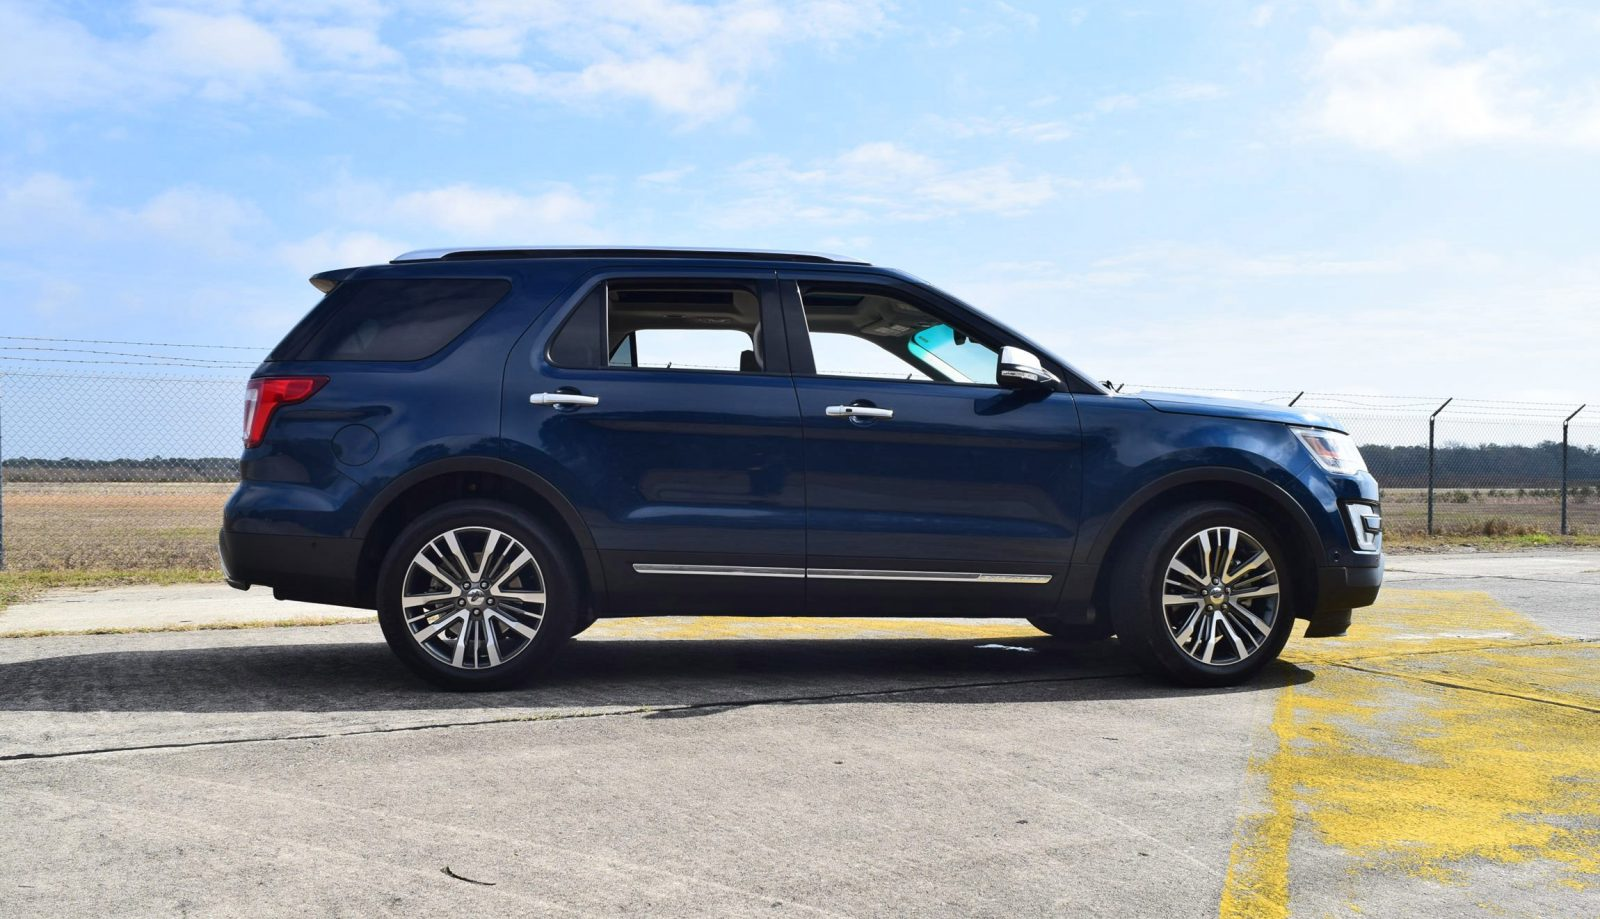 2017 Ford Explorer Platinum 4x4 Hd Road Test Review